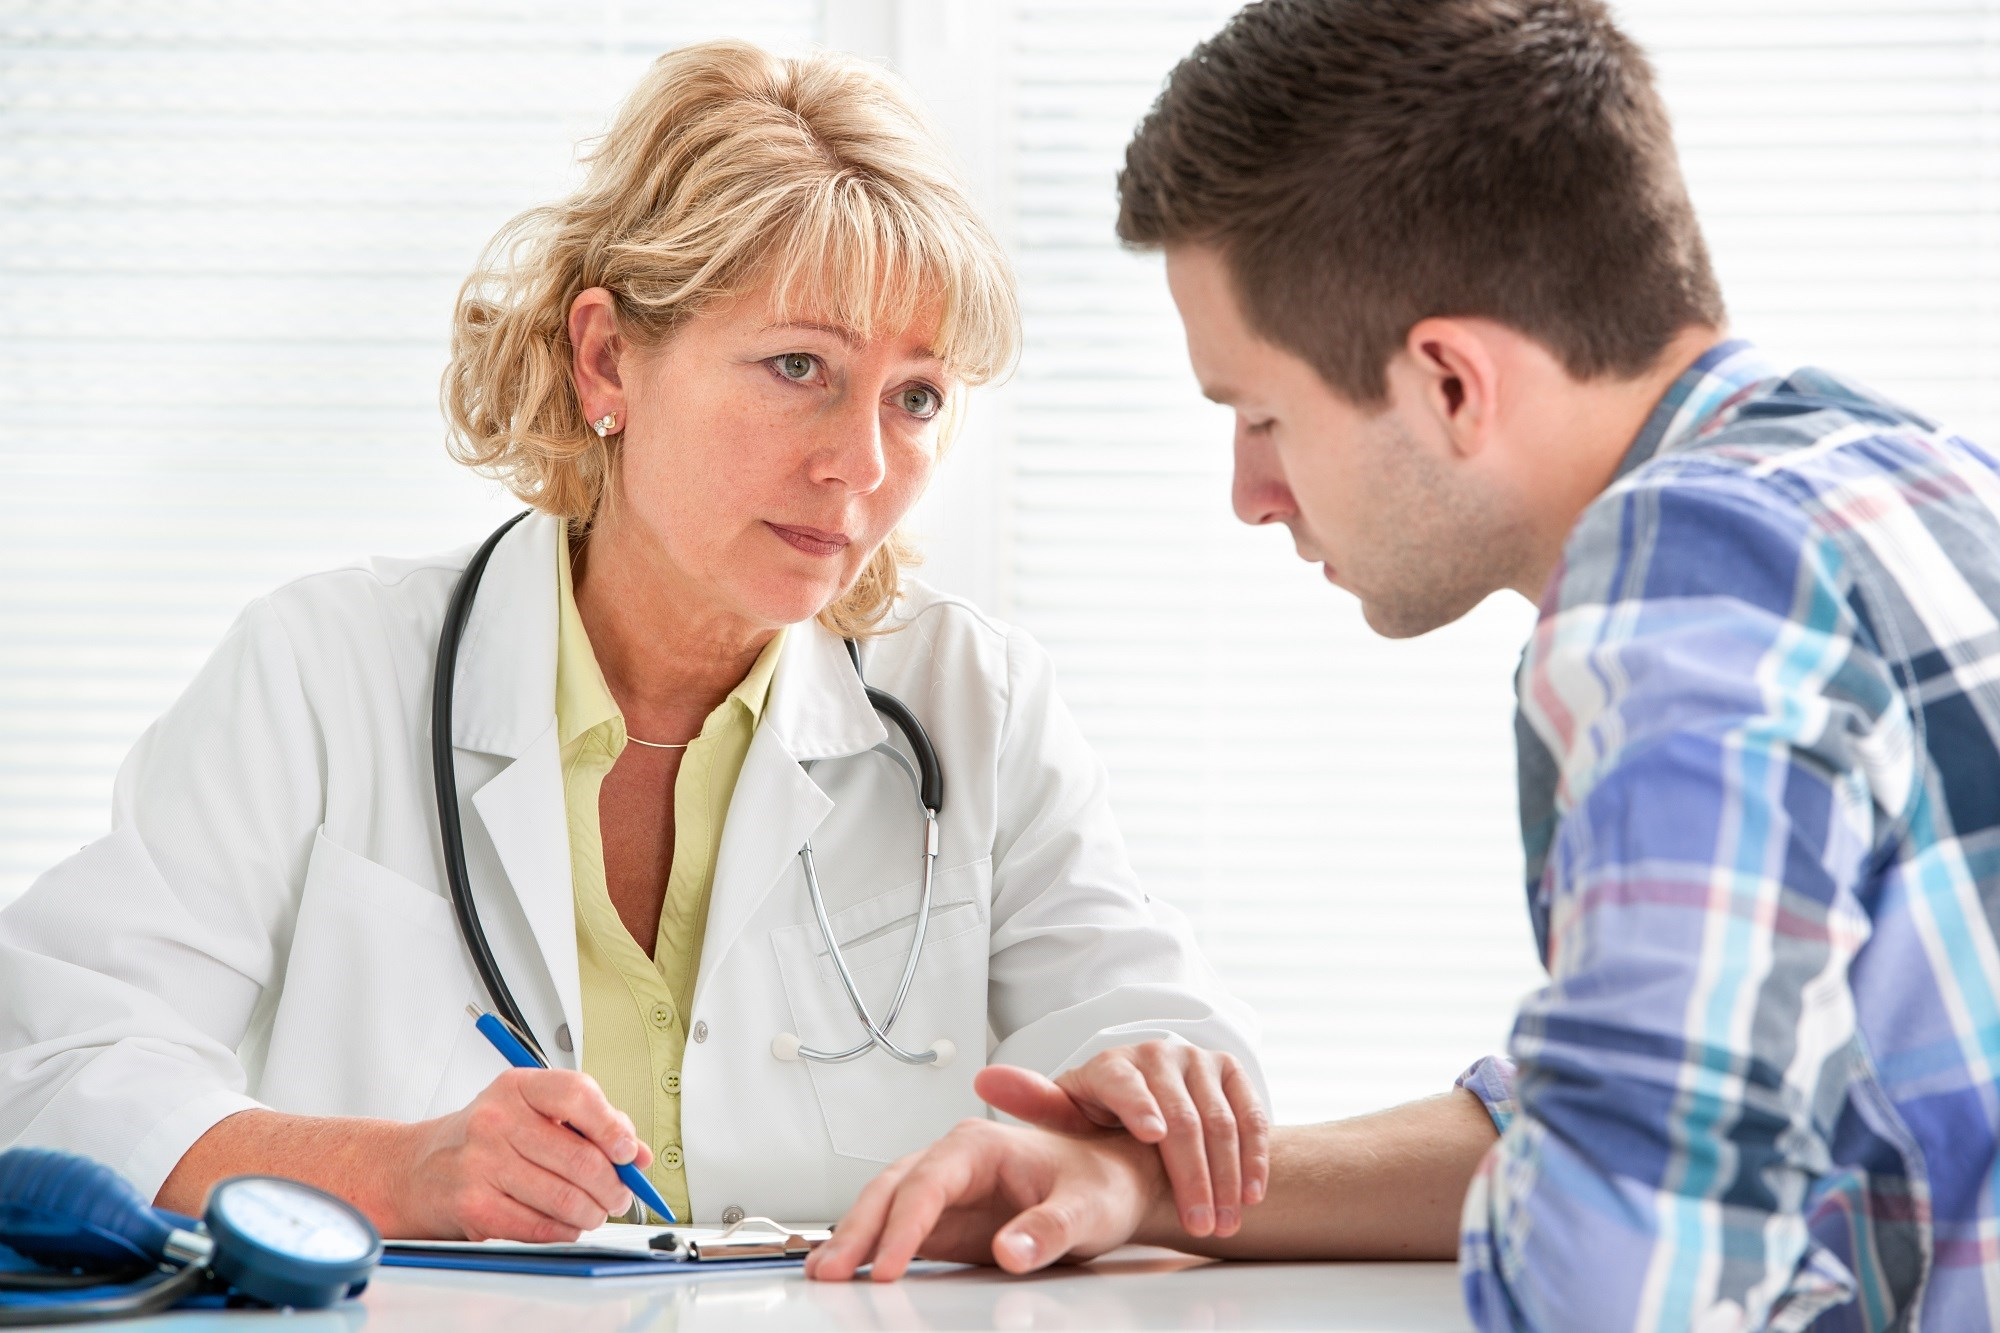 Timely Receipt of Opioid Addiction Medication May Improve Youth Care Retention